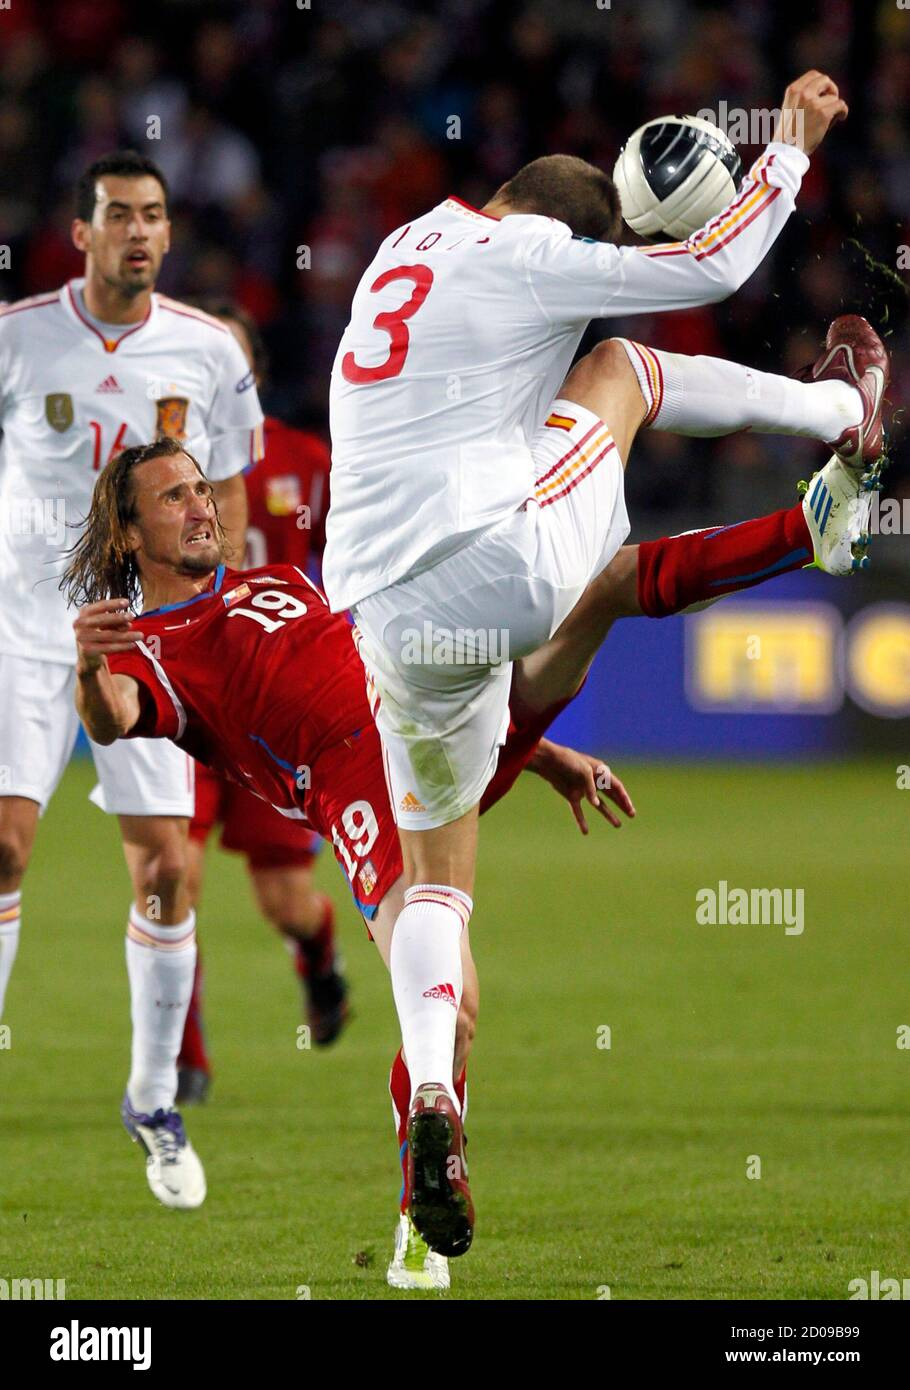 Petr Jiracek (L) of the Czech Republic challenges Gerard Pique of Spain during their Euro 2012 Group I qualifying soccer match in Prague October 7, 2011.   REUTERS/Petr Josek (CZECH REPUBLIC - Tags: SPORT SOCCER) Banque D'Images